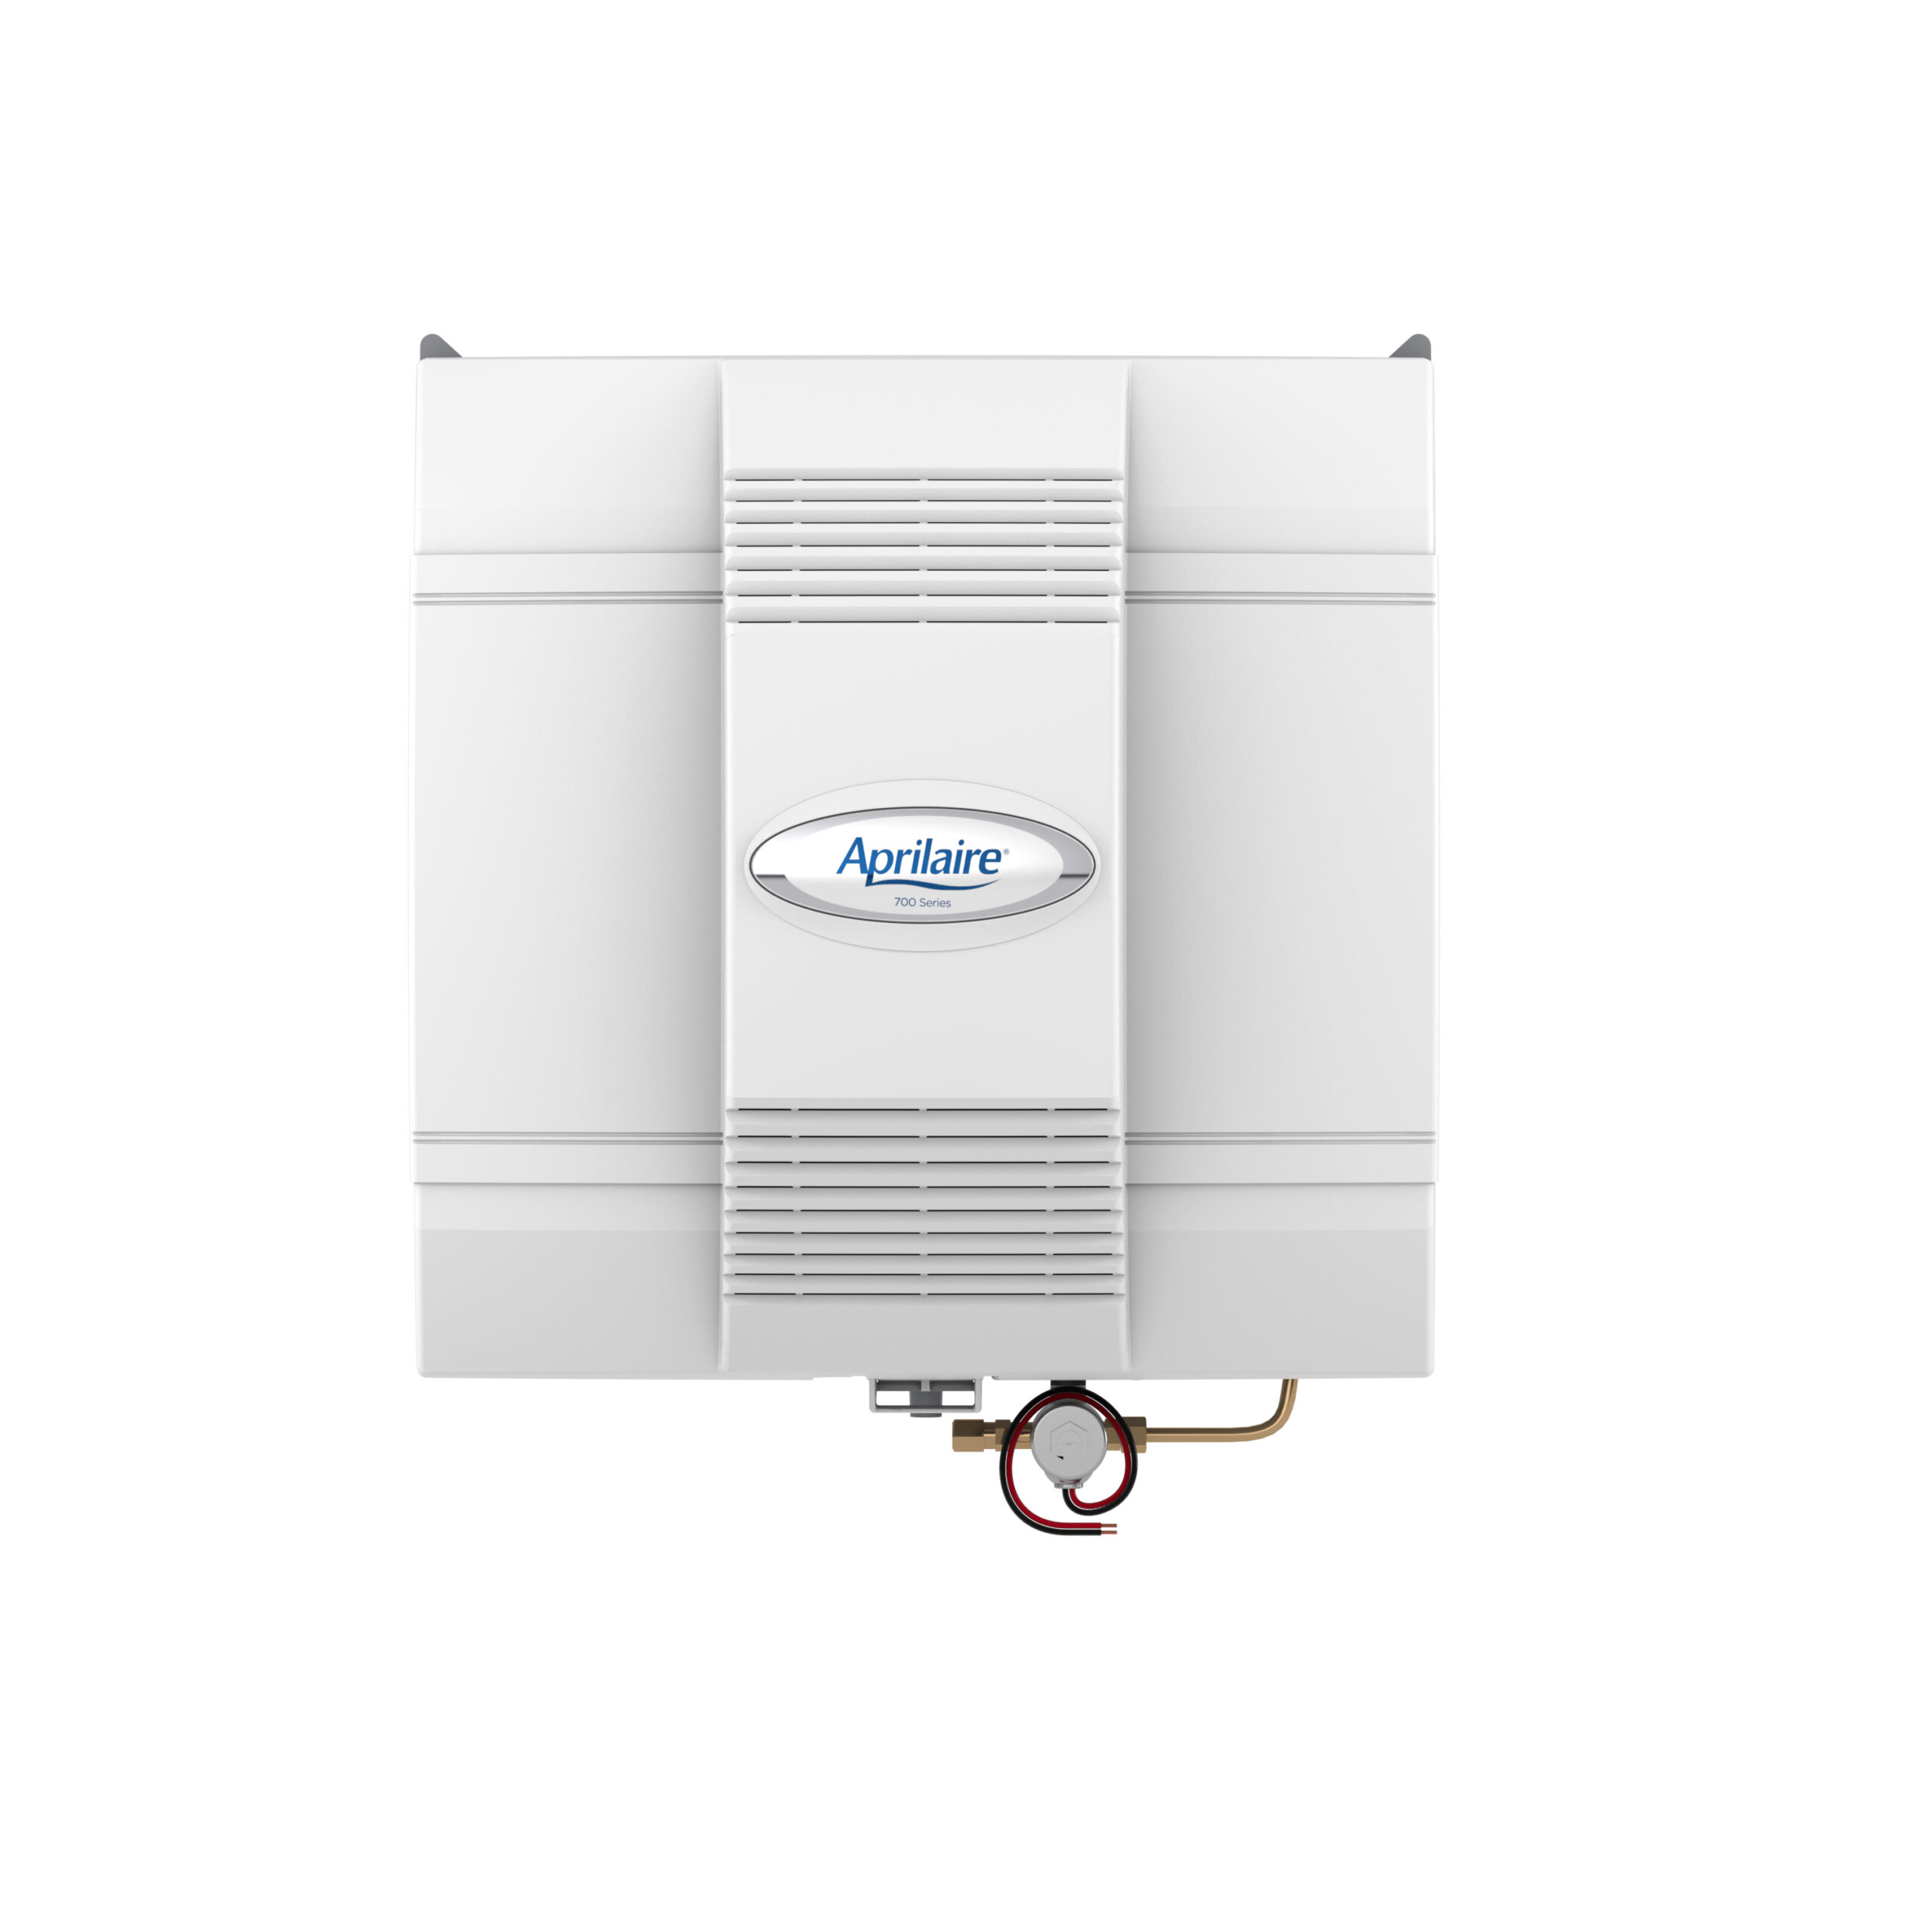 Air Purification Services